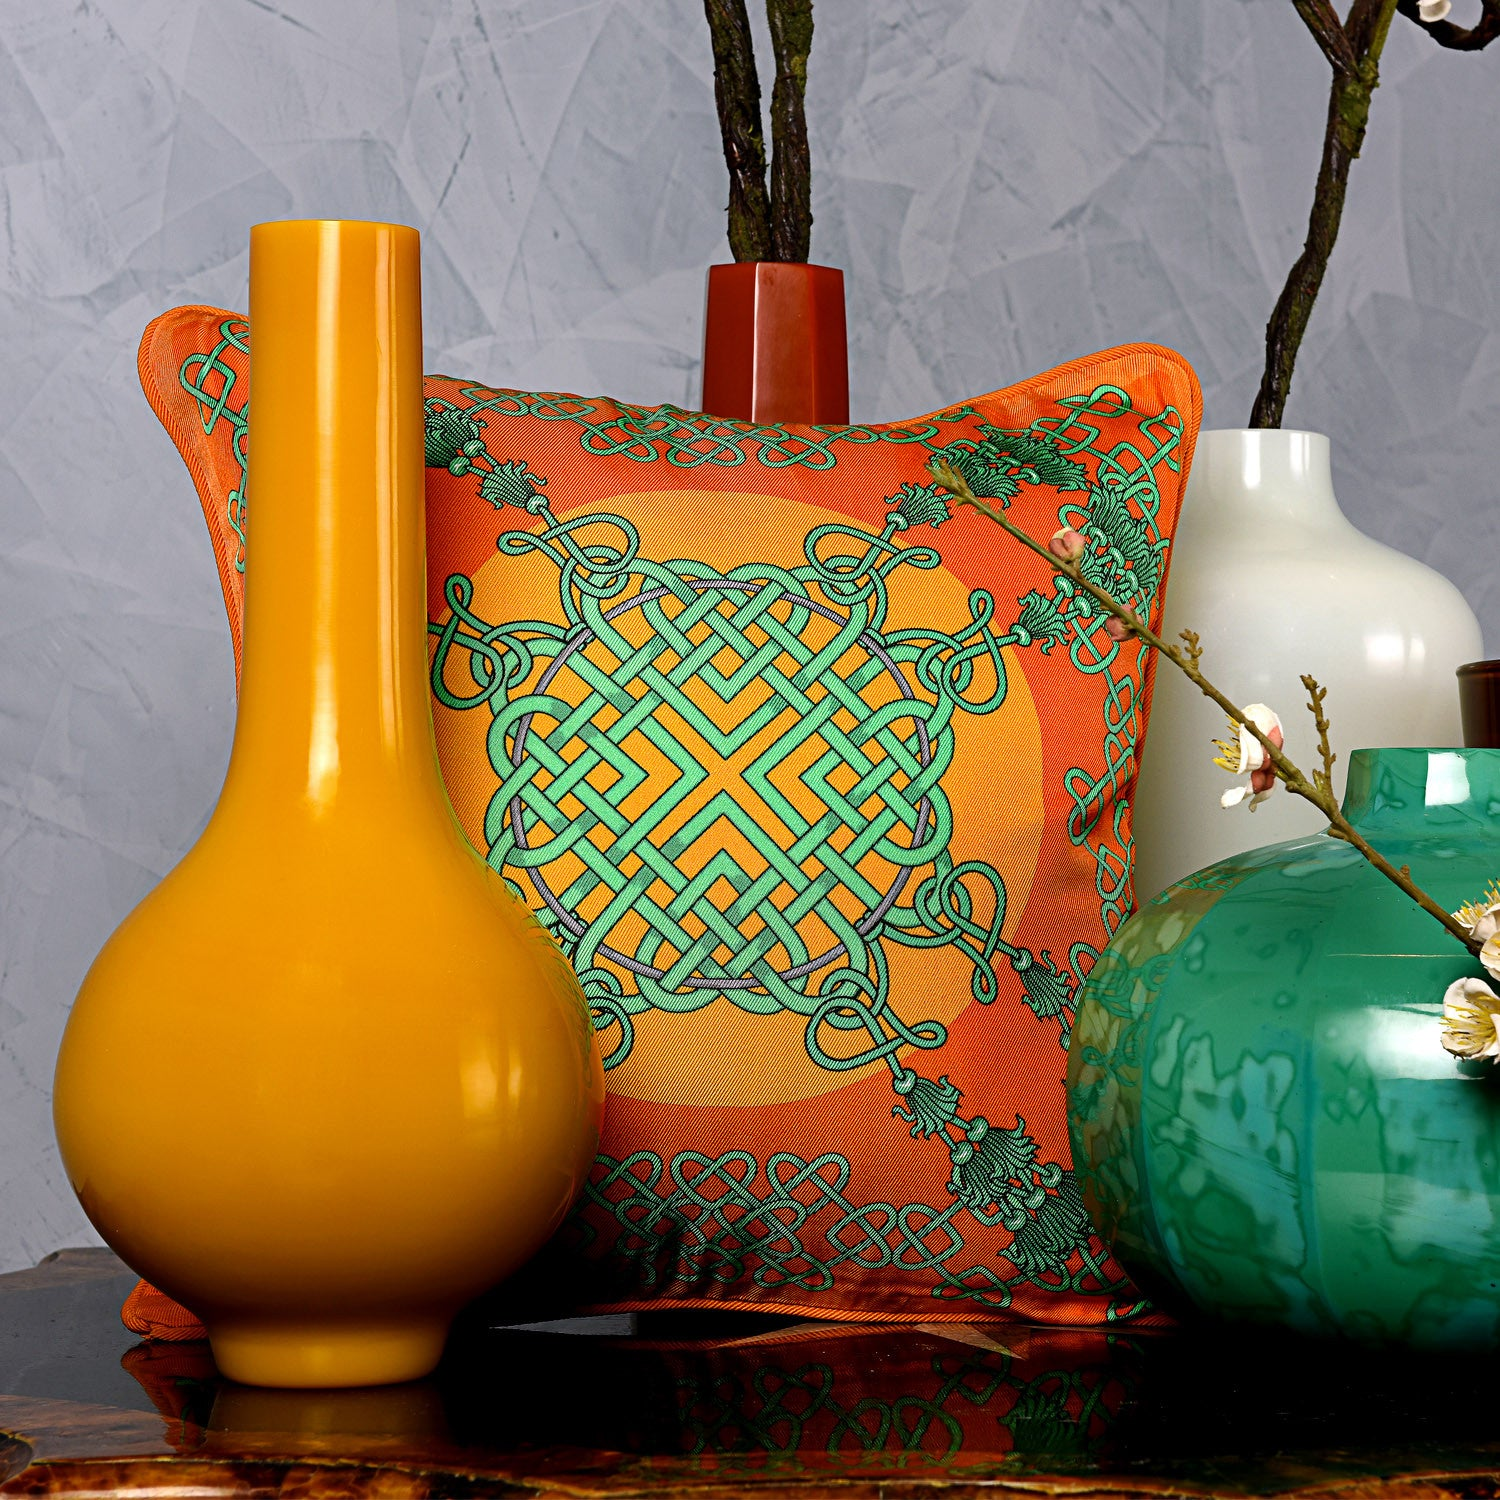 Silk twill orange & green Chinese knot print cushion - Bivain - 2